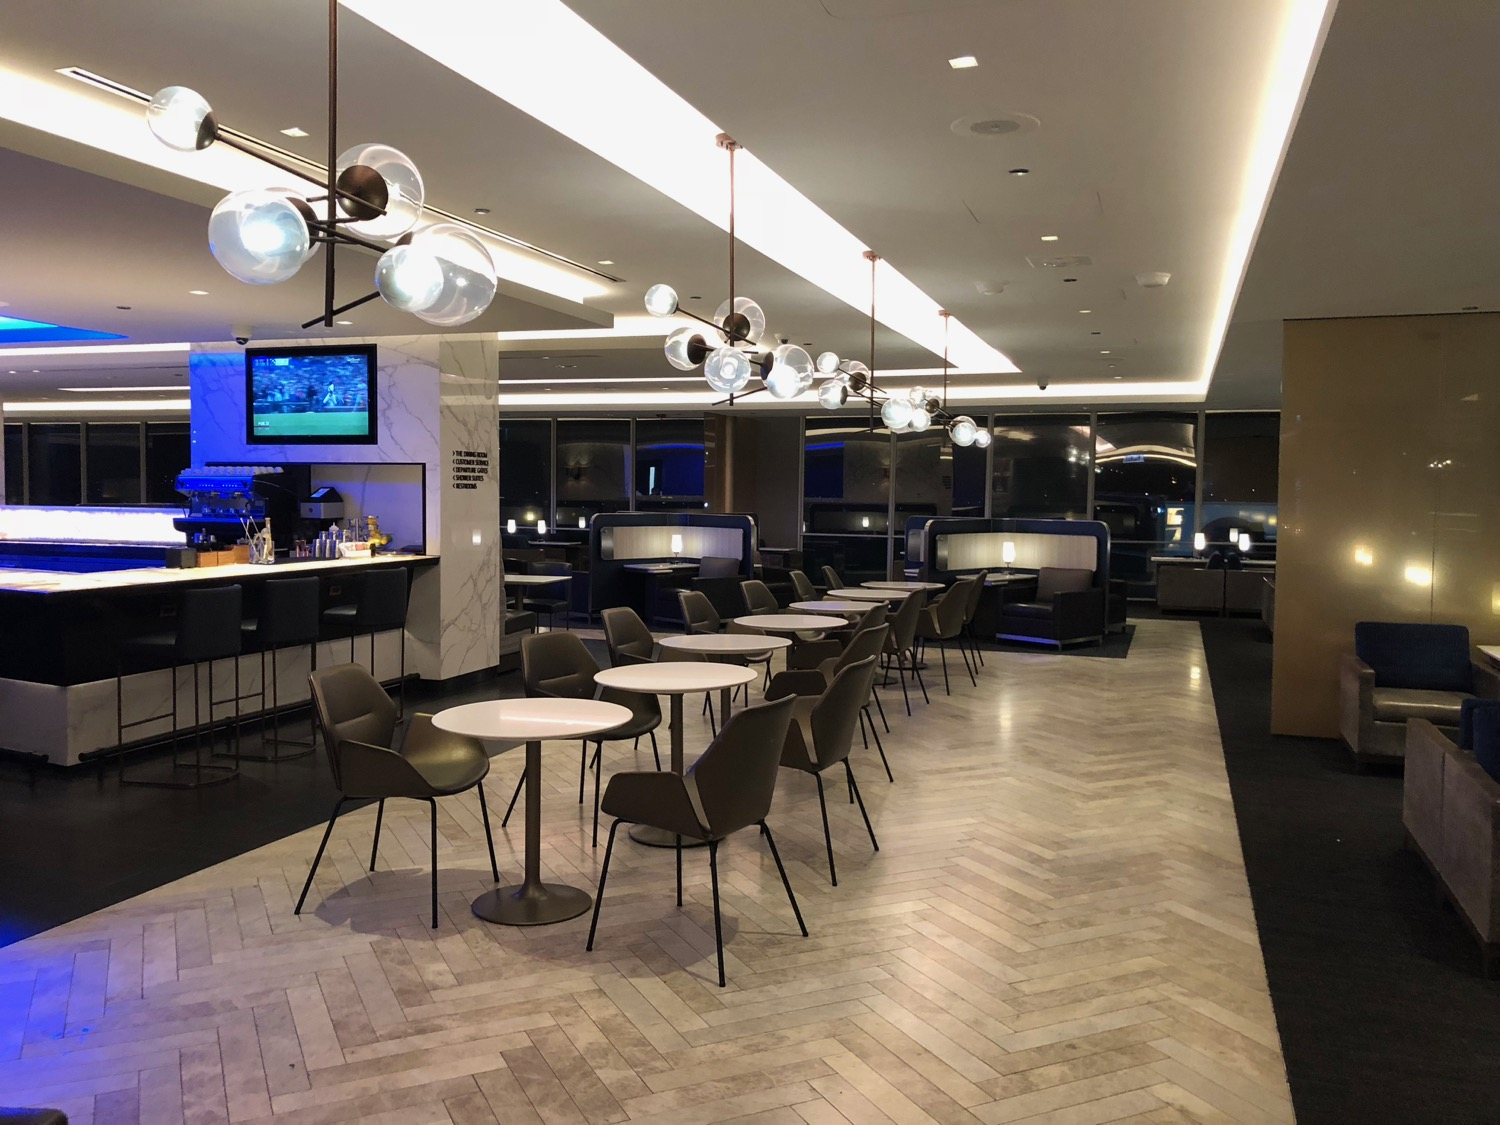 Review: United Polaris Lounge Chicago (ORD) - Live and Let's Fly